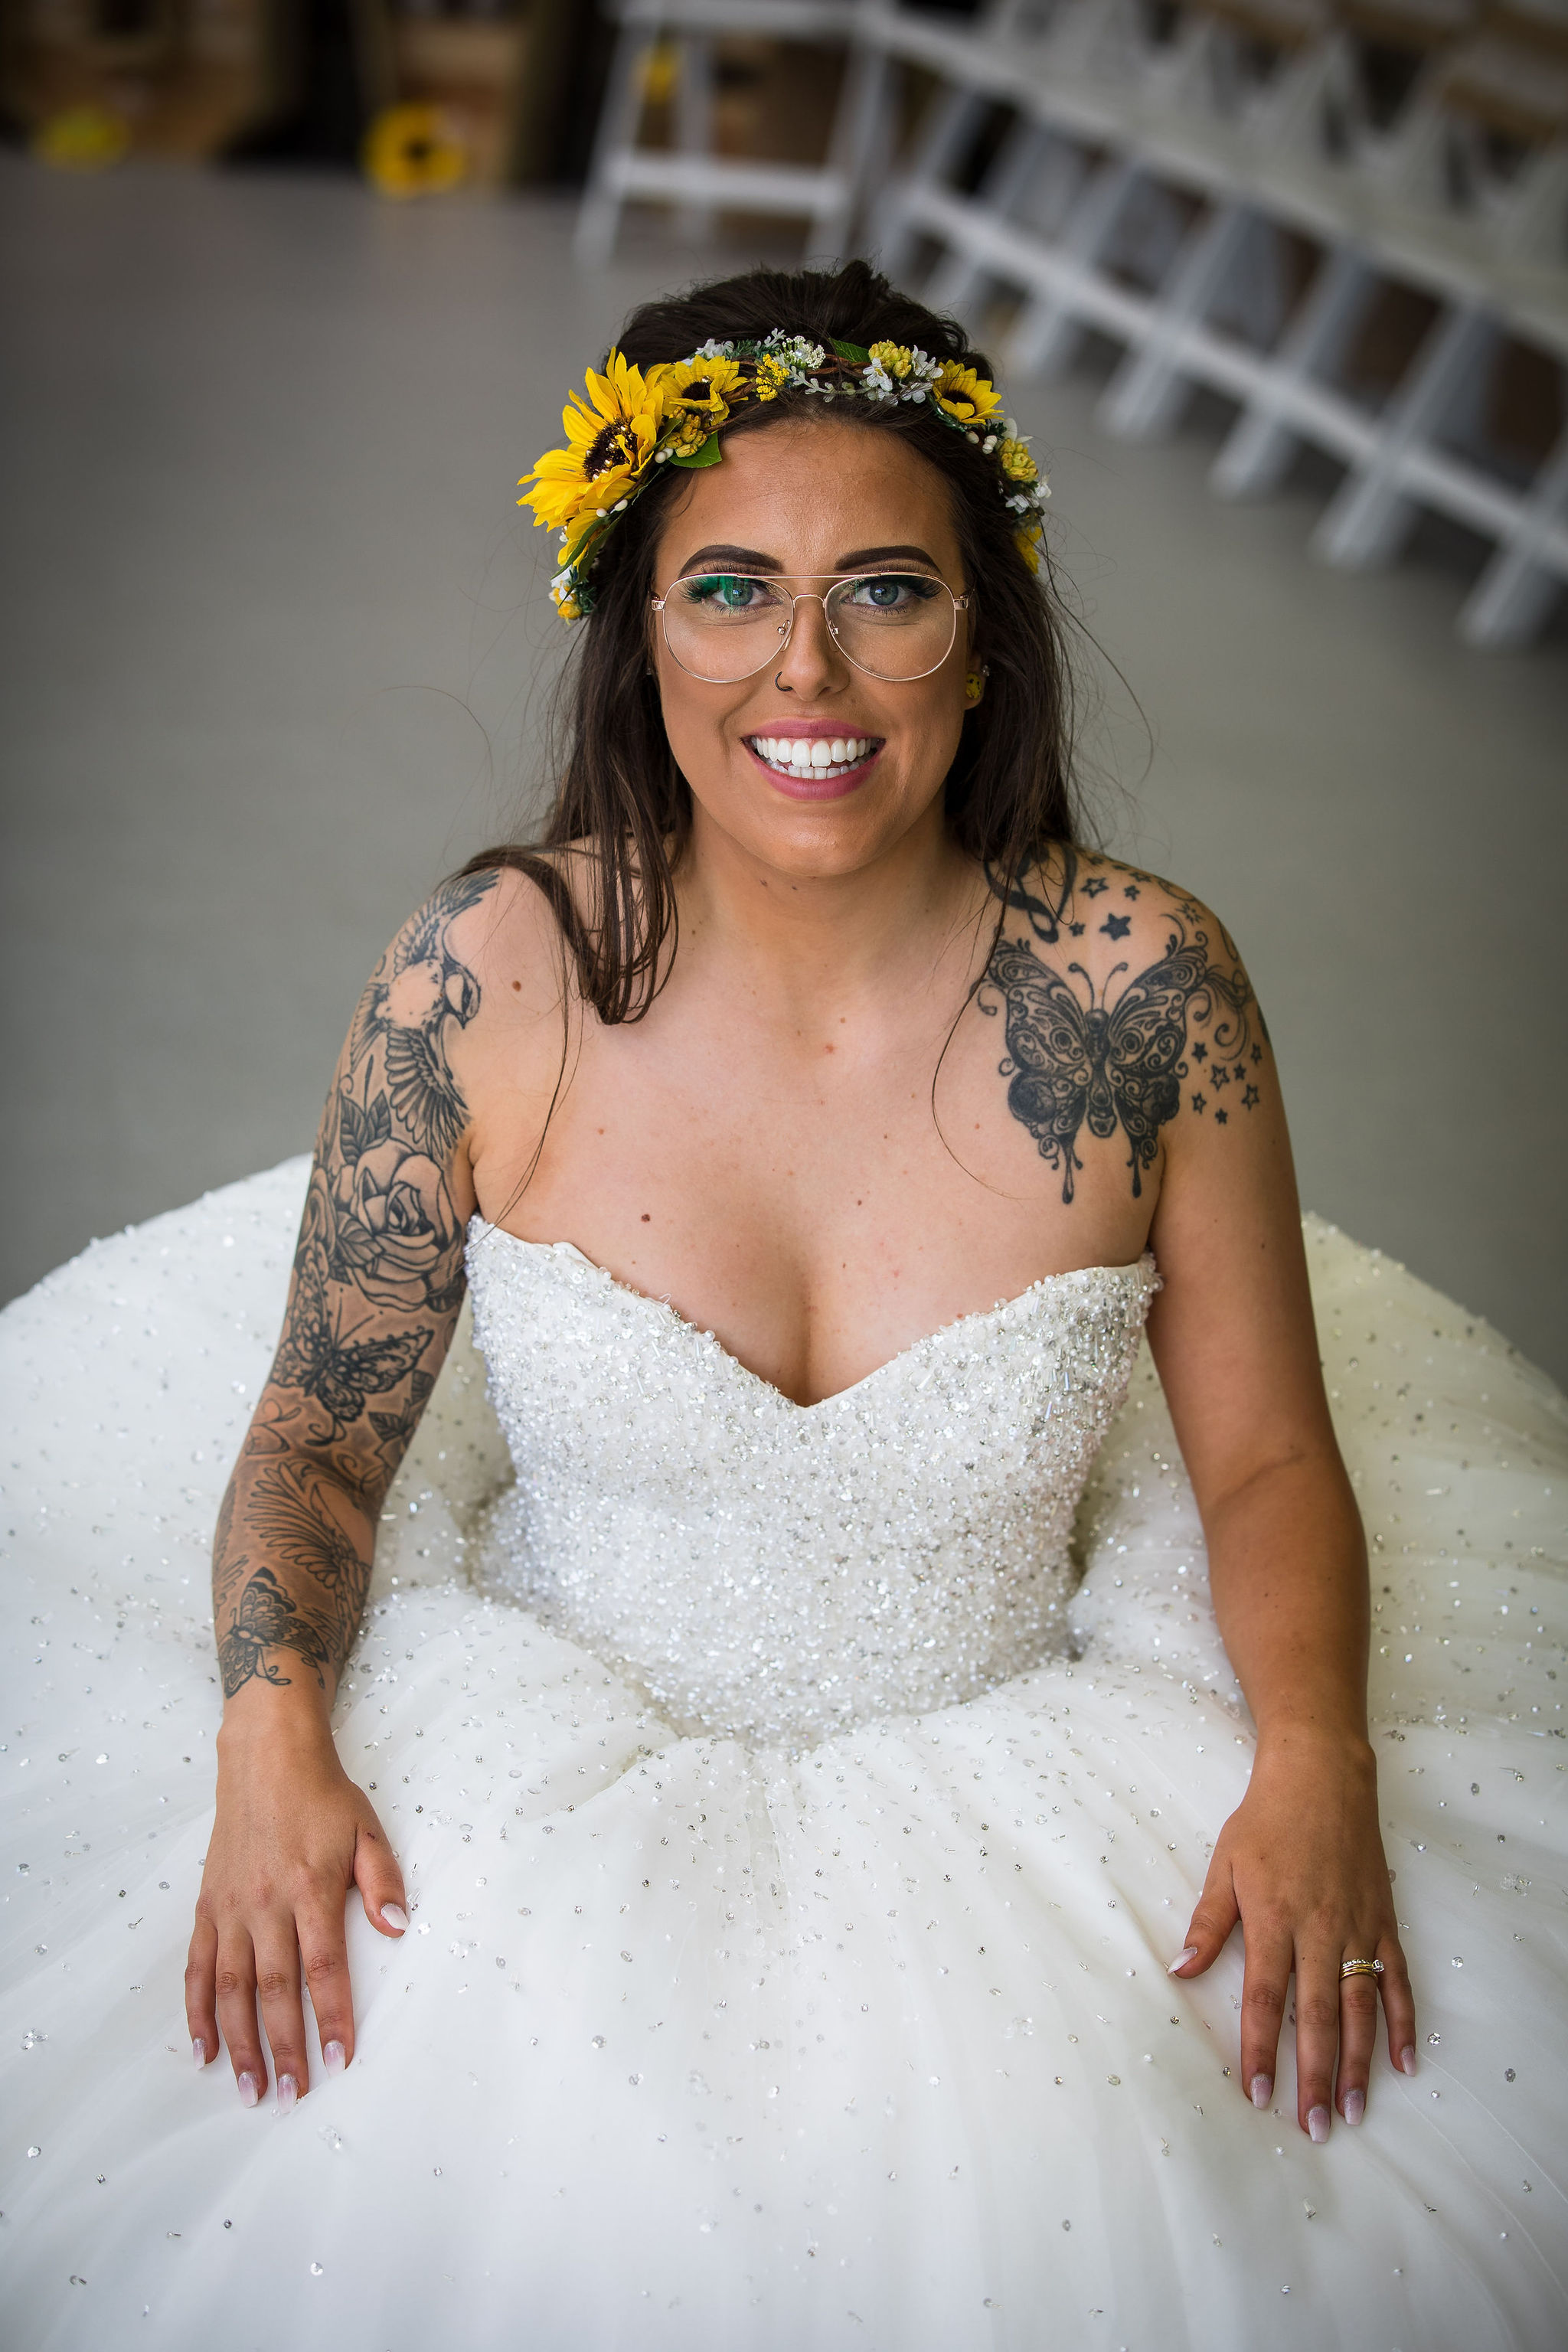 Harriet&Rhys Wedding - Magical sunflower wedding - tattooed bride inspiration